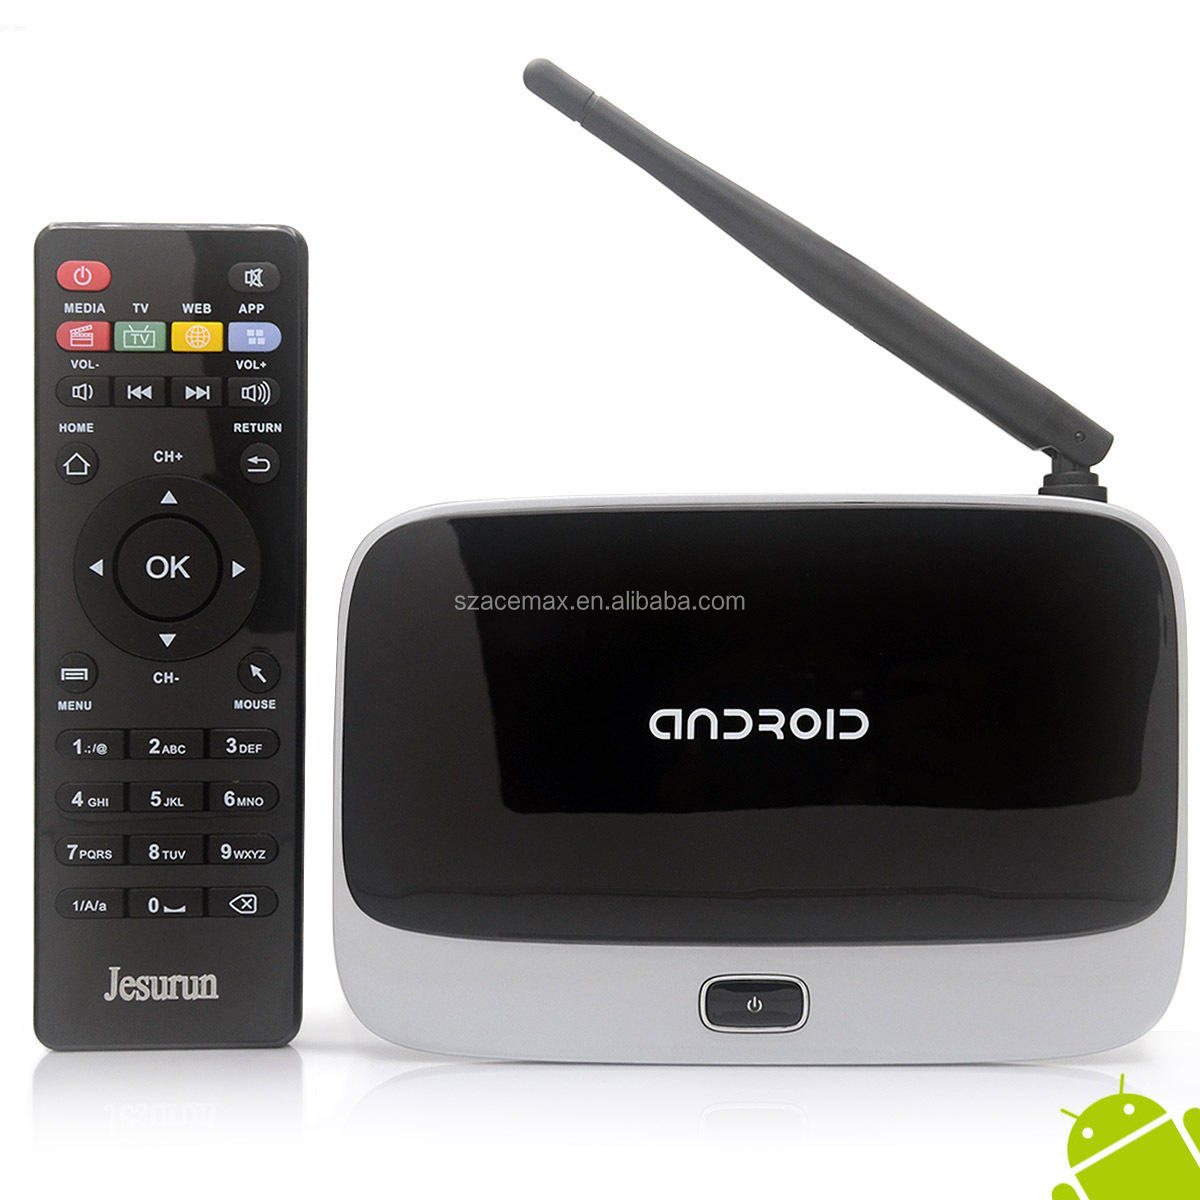 CS918 android 4.4 rk3188 Quad <span class=keywords><strong>Cortex</strong></span> <span class=keywords><strong>A9</strong></span> TV box